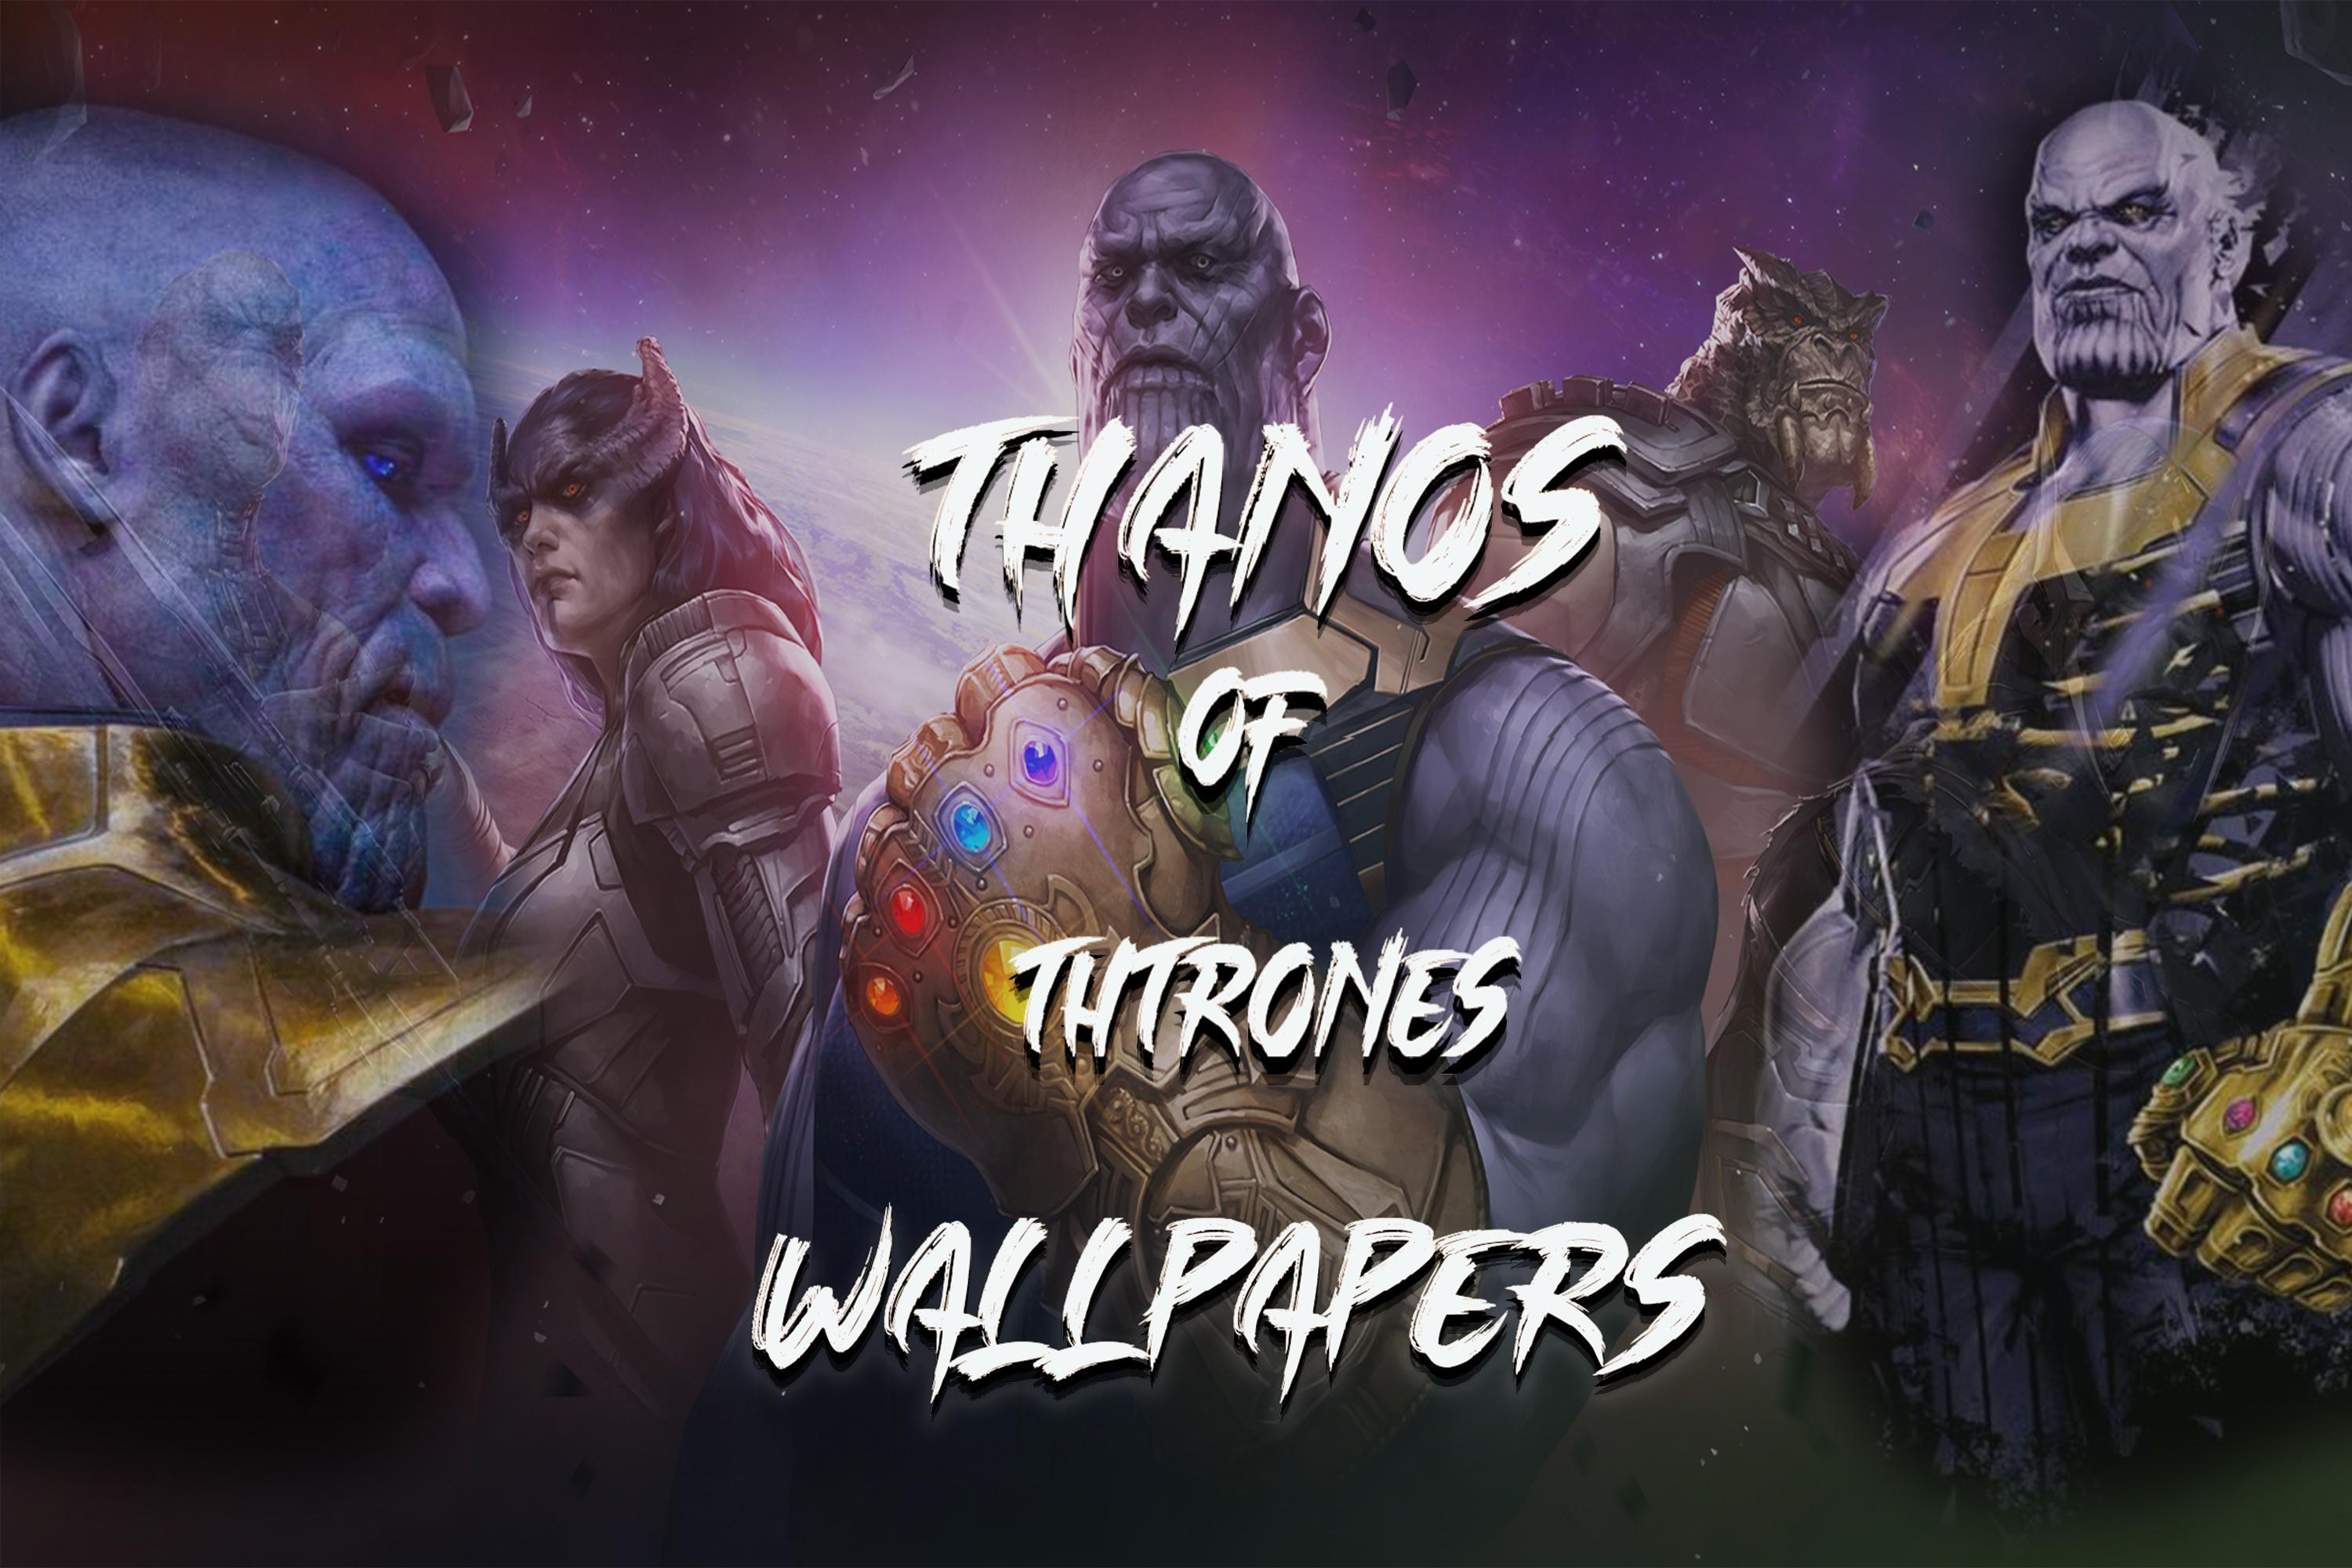 Thanos Of Thrones Wallpaper 4k For Android Apk Download